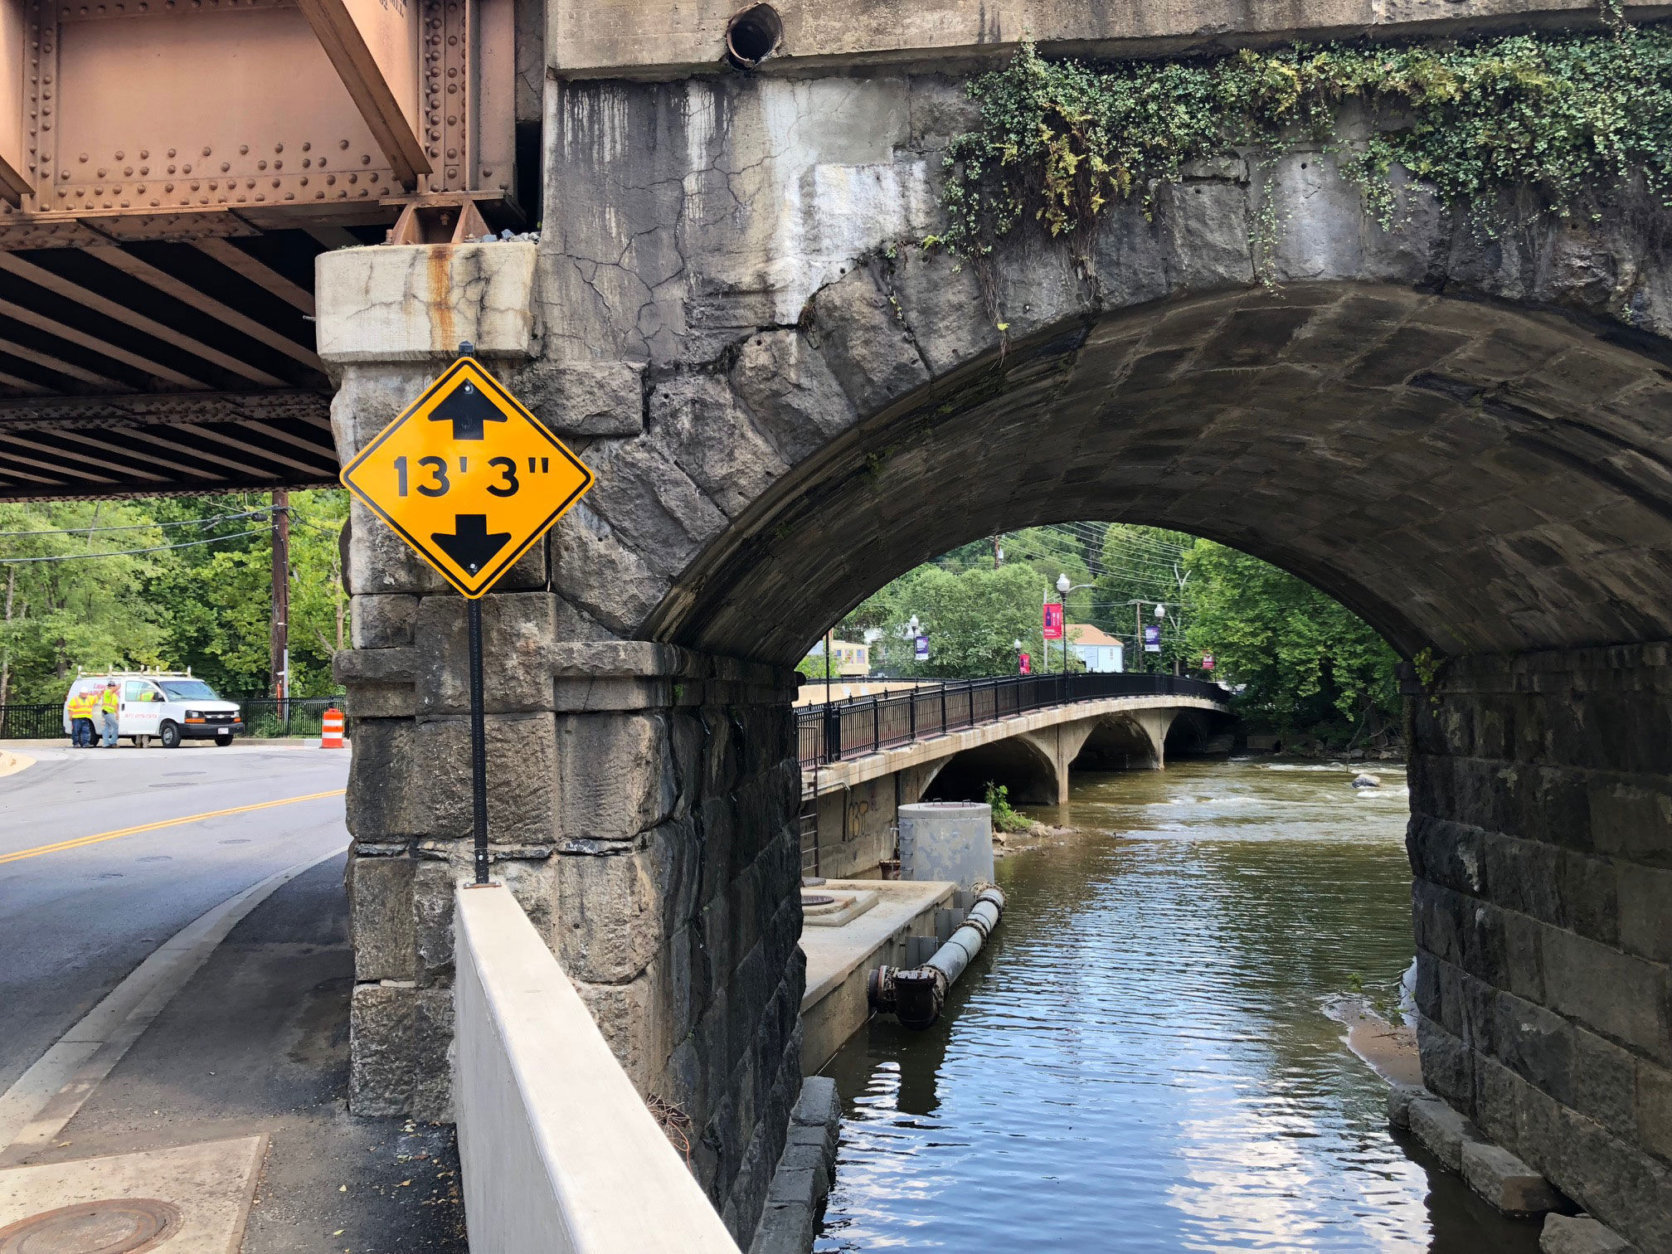 Ellicott City is at the convergence point of multiple waterways, and stream channels run under streets and buildings. (WTOP/John Aaron)